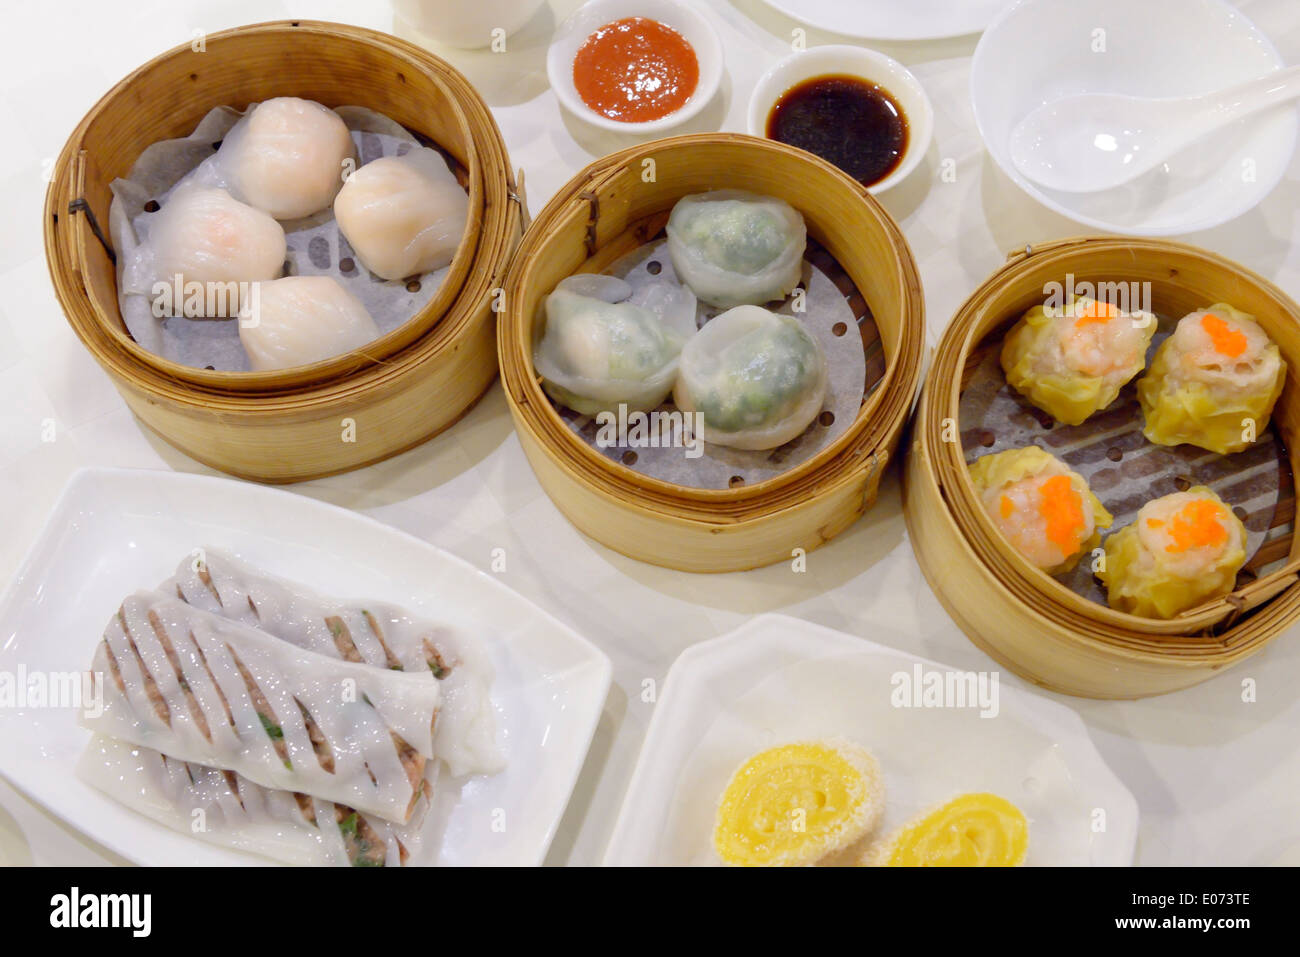 Dim sum dumplings dishes at a restaurant - Stock Image